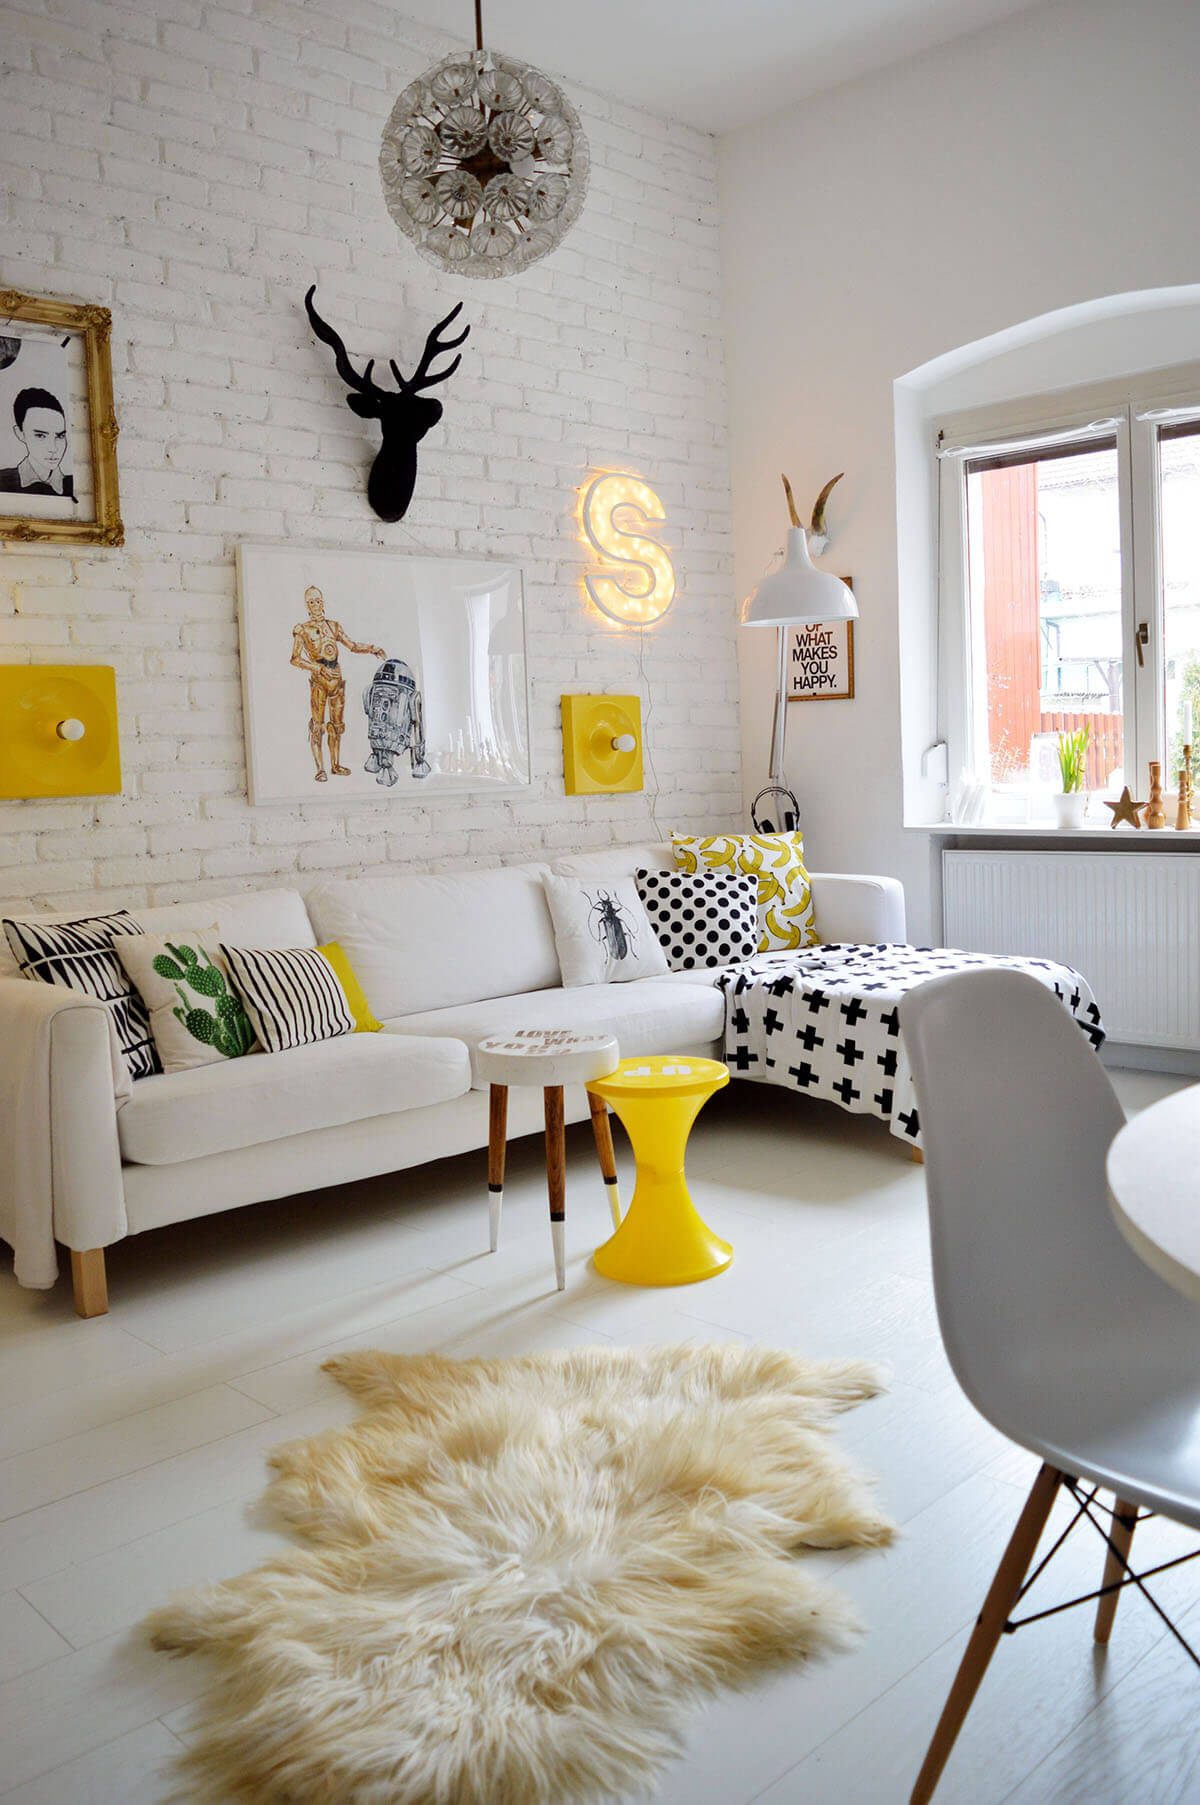 25+ Best Small Living Room Decor and Design Ideas for 2020 on Small Living Room Ideas 2019  id=32004